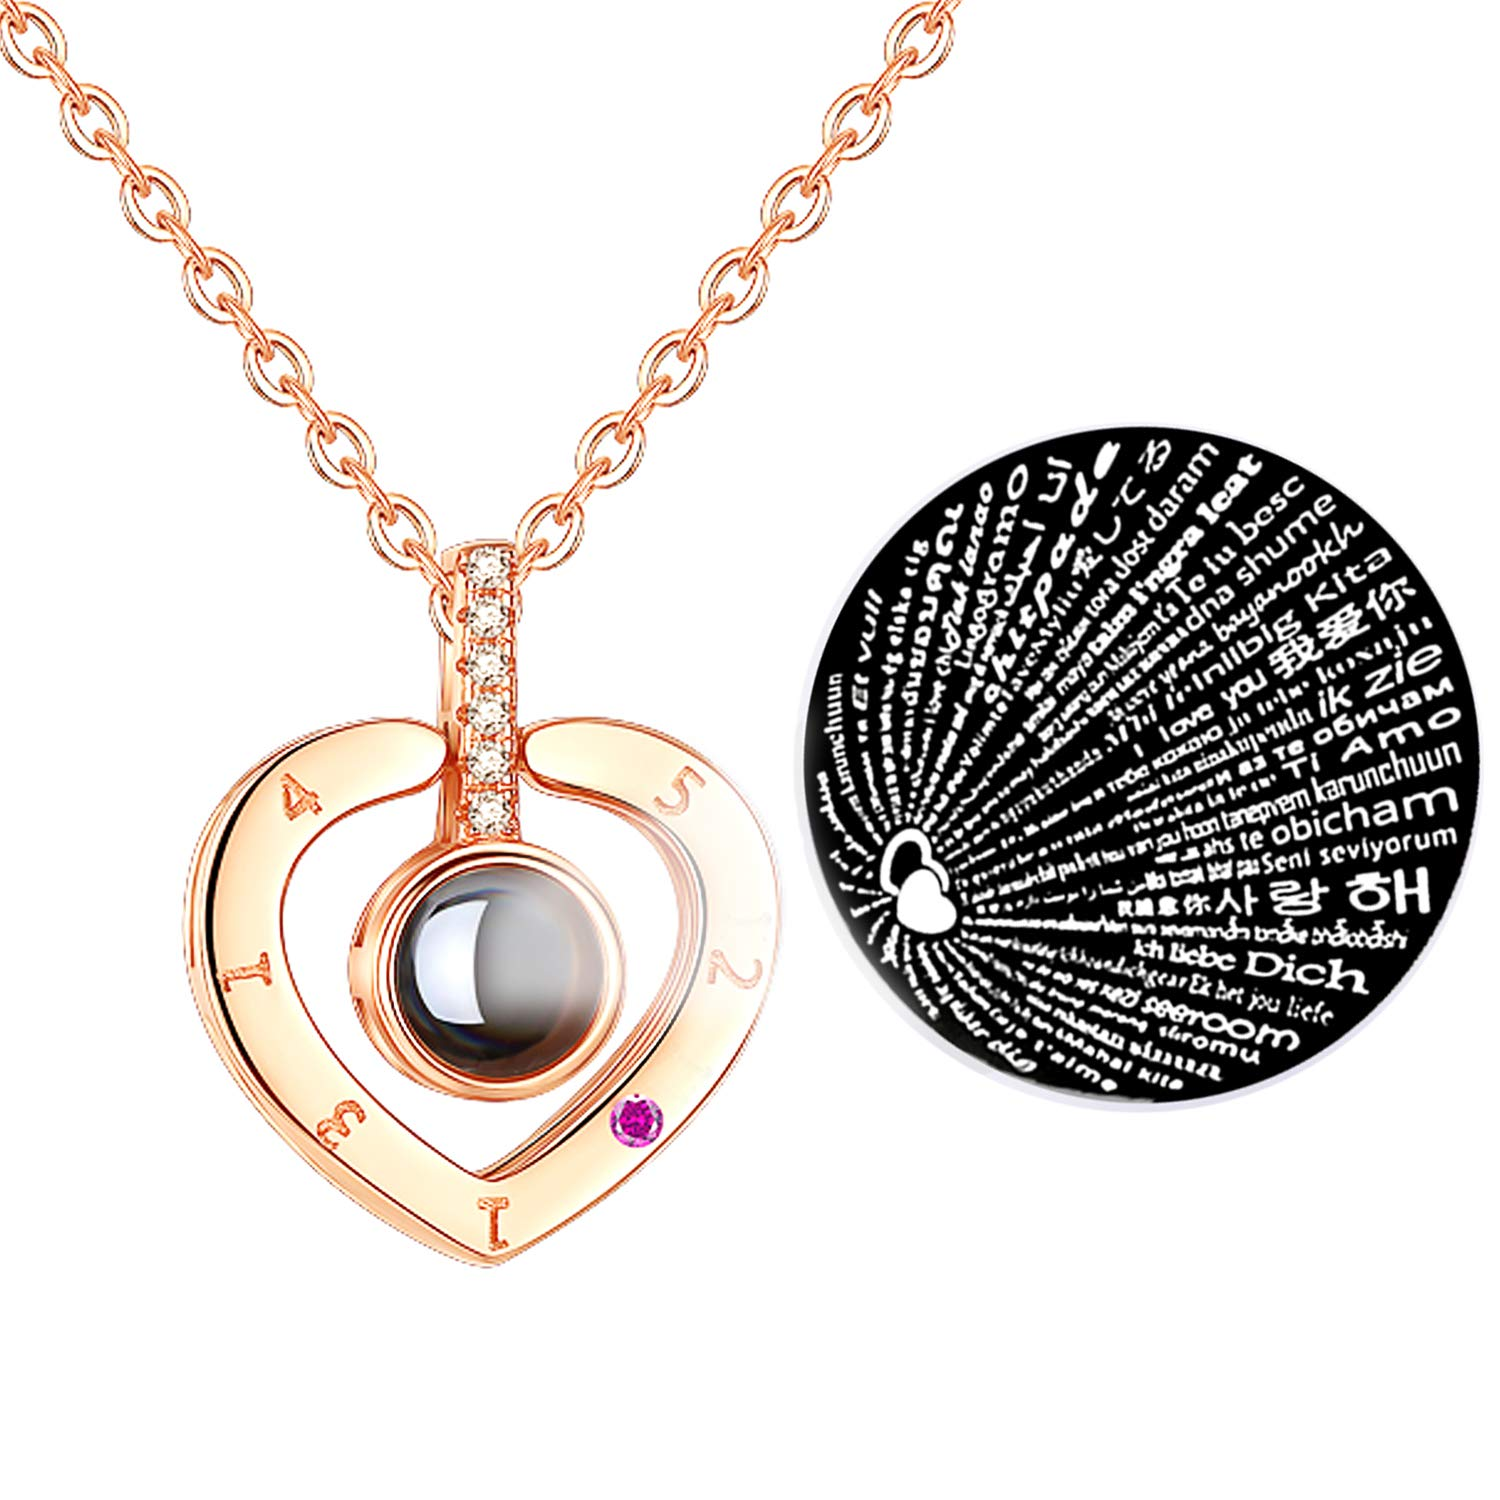 Cuidado 925 Sterling Silver Projective Necklace A-Custom Photo on it DOUYIN Necklace 100 Different Languages for I Love U 100 Different Languages for I Love U DOUYIN Necklace The Memory of Love Nanotechnology Necklace